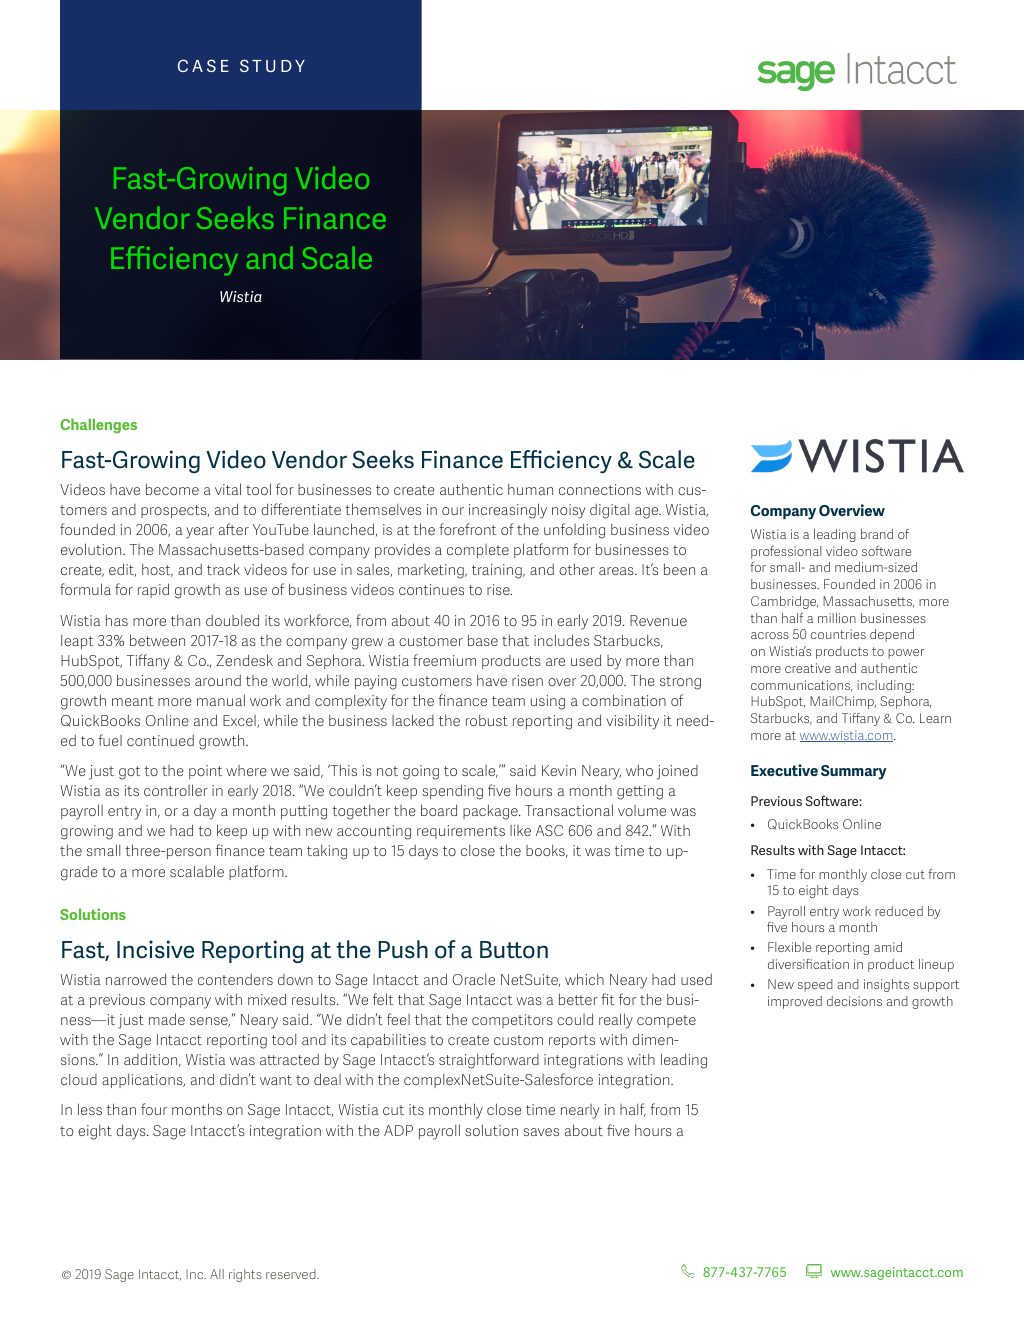 Wistia: Fast-Growing Video Vendor Seeks Finance Efficiency